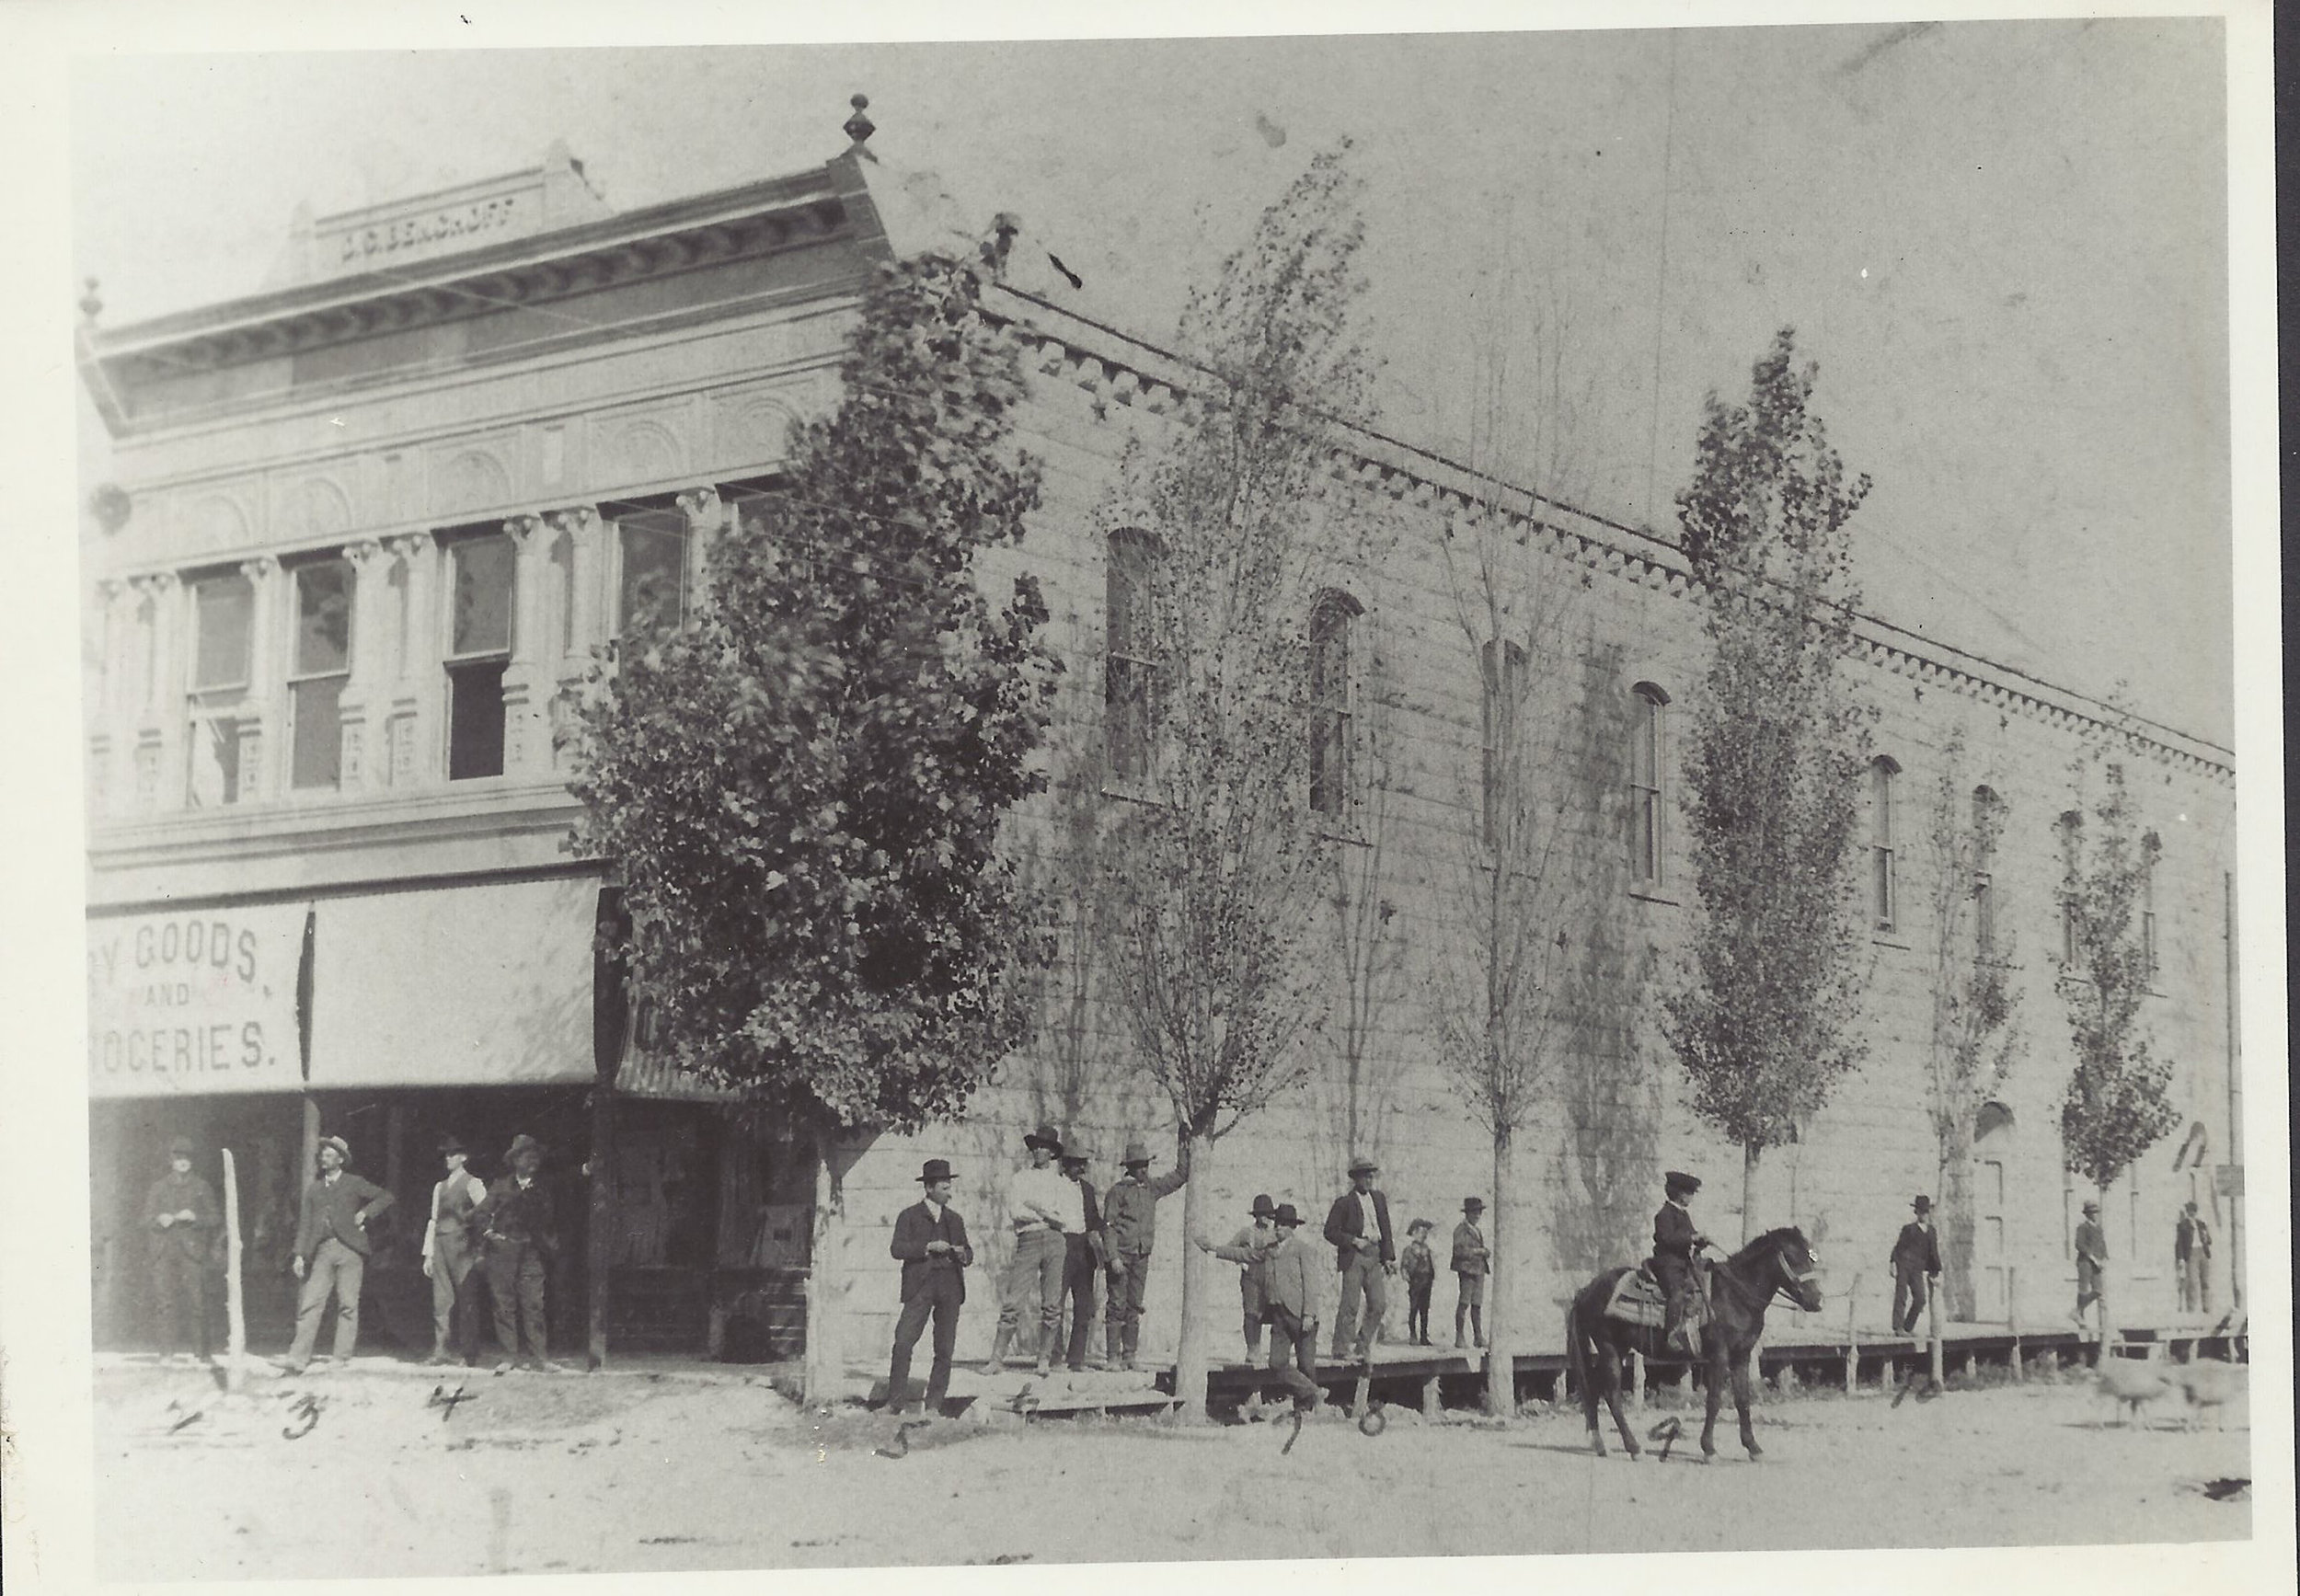 D.G. Benchoff Dry Goods and Groceries, circa 1906.